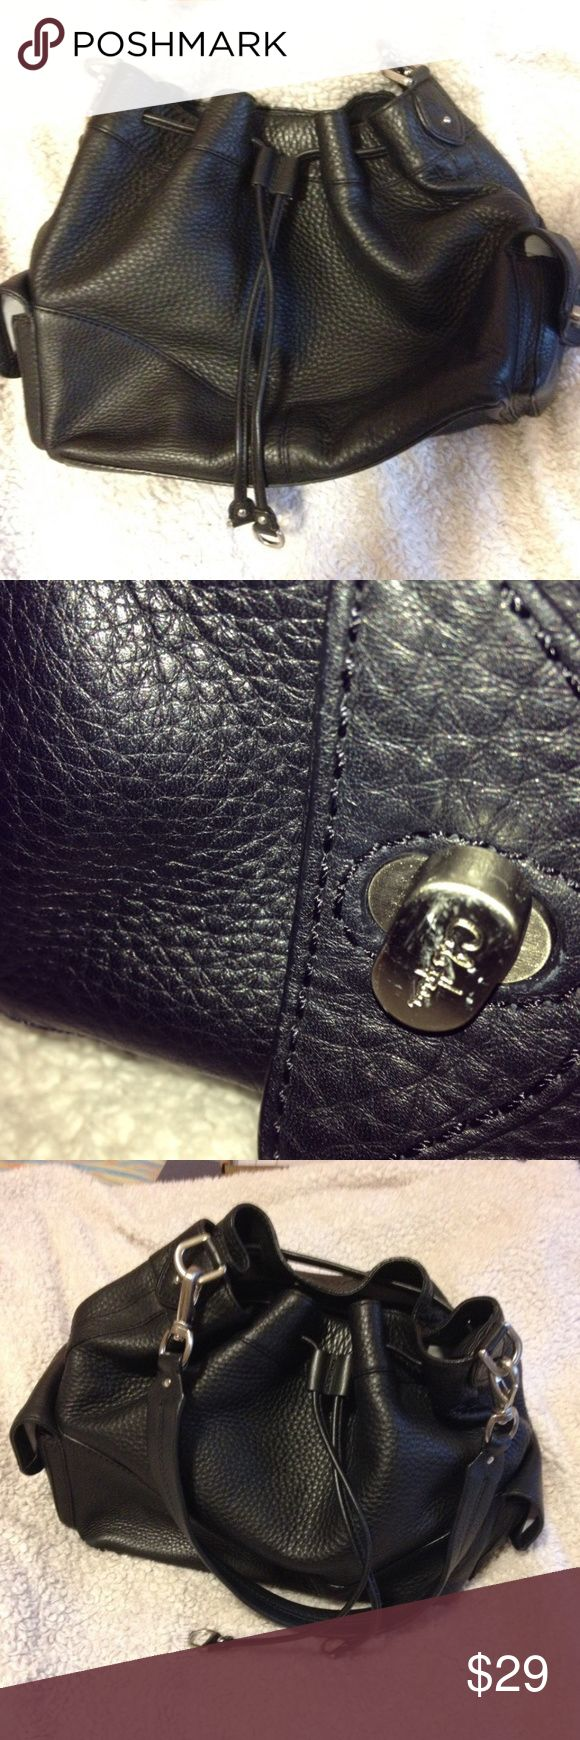 Cole Haan black pebble leather bucket-style hobo Cole Haan black pebble leather bucket-style purse, drawstrings, gently used,  2 exterior pockets  Height- 11 inches Width- 16 Inches Depth- 6 Inches Cole Haan Bags Hobos